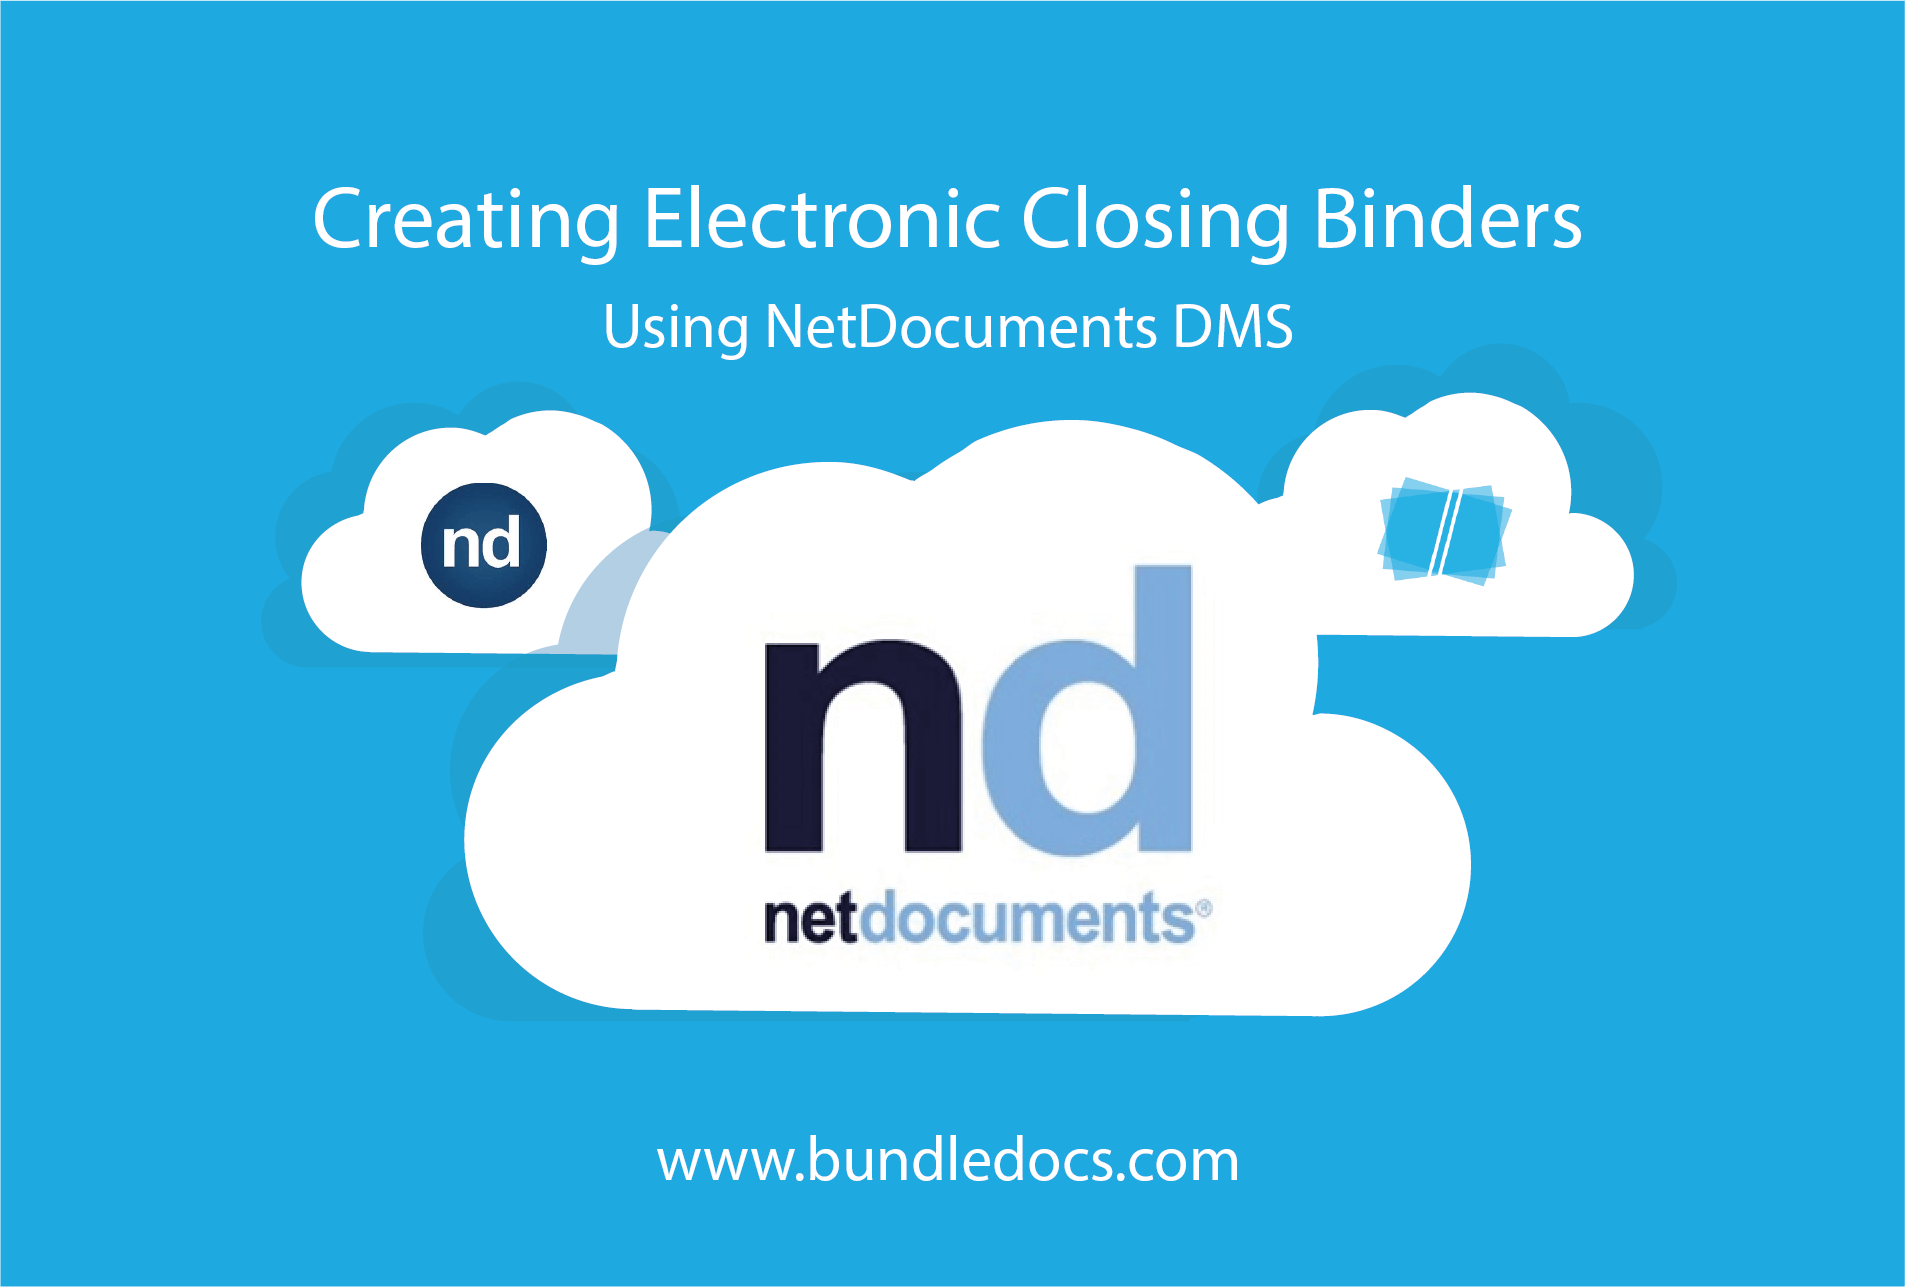 Creating_Electronic_Closing_Binders_using_NetDocuments_DMS_and_Bundledocs.png